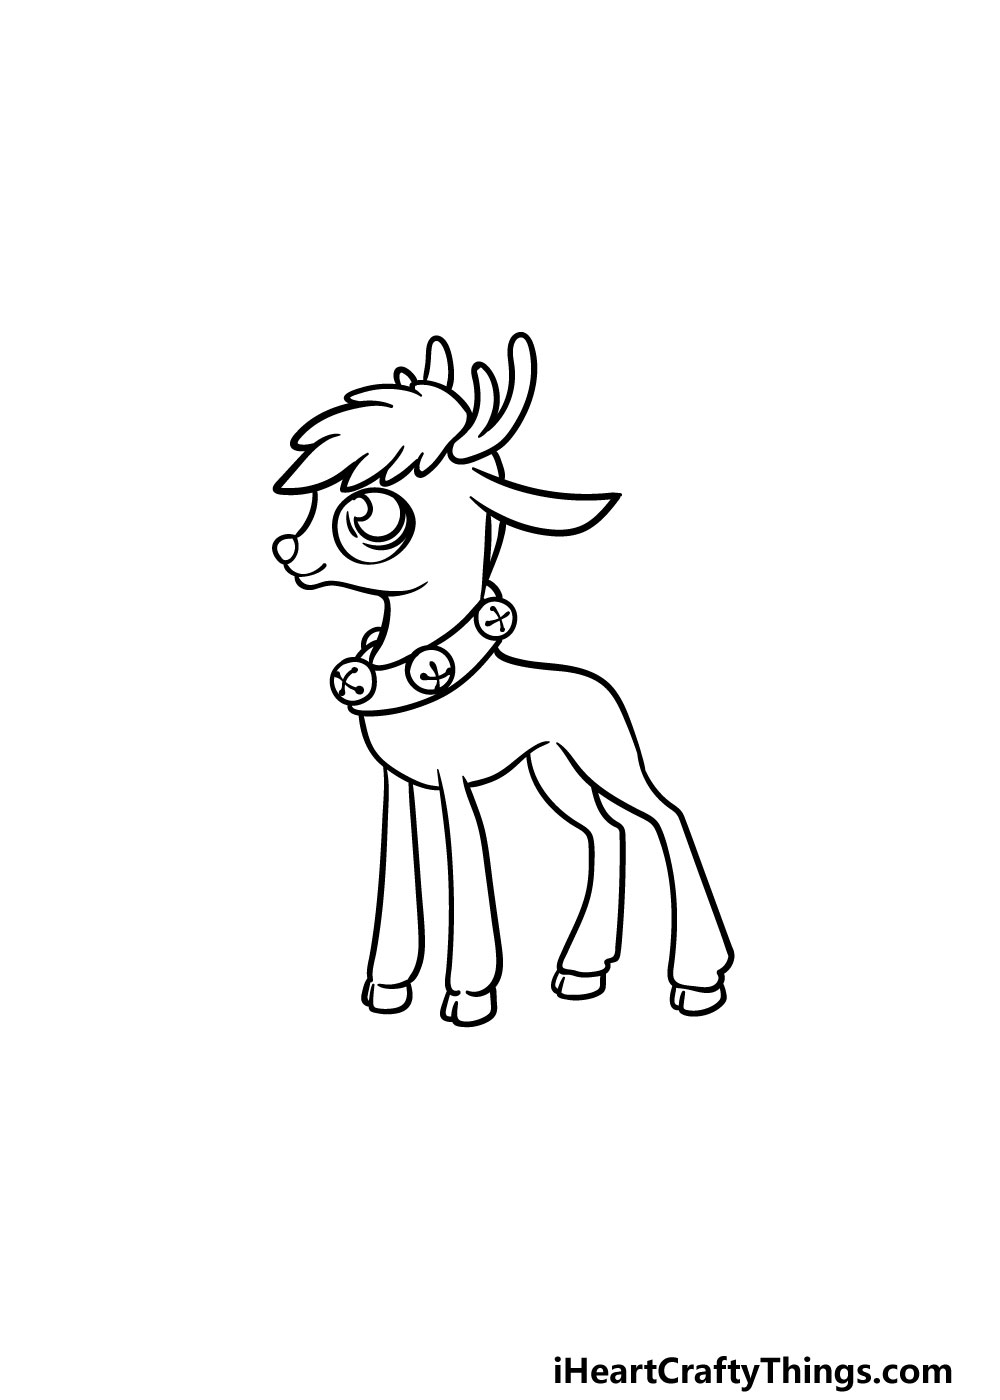 drawing Rudolph step 4